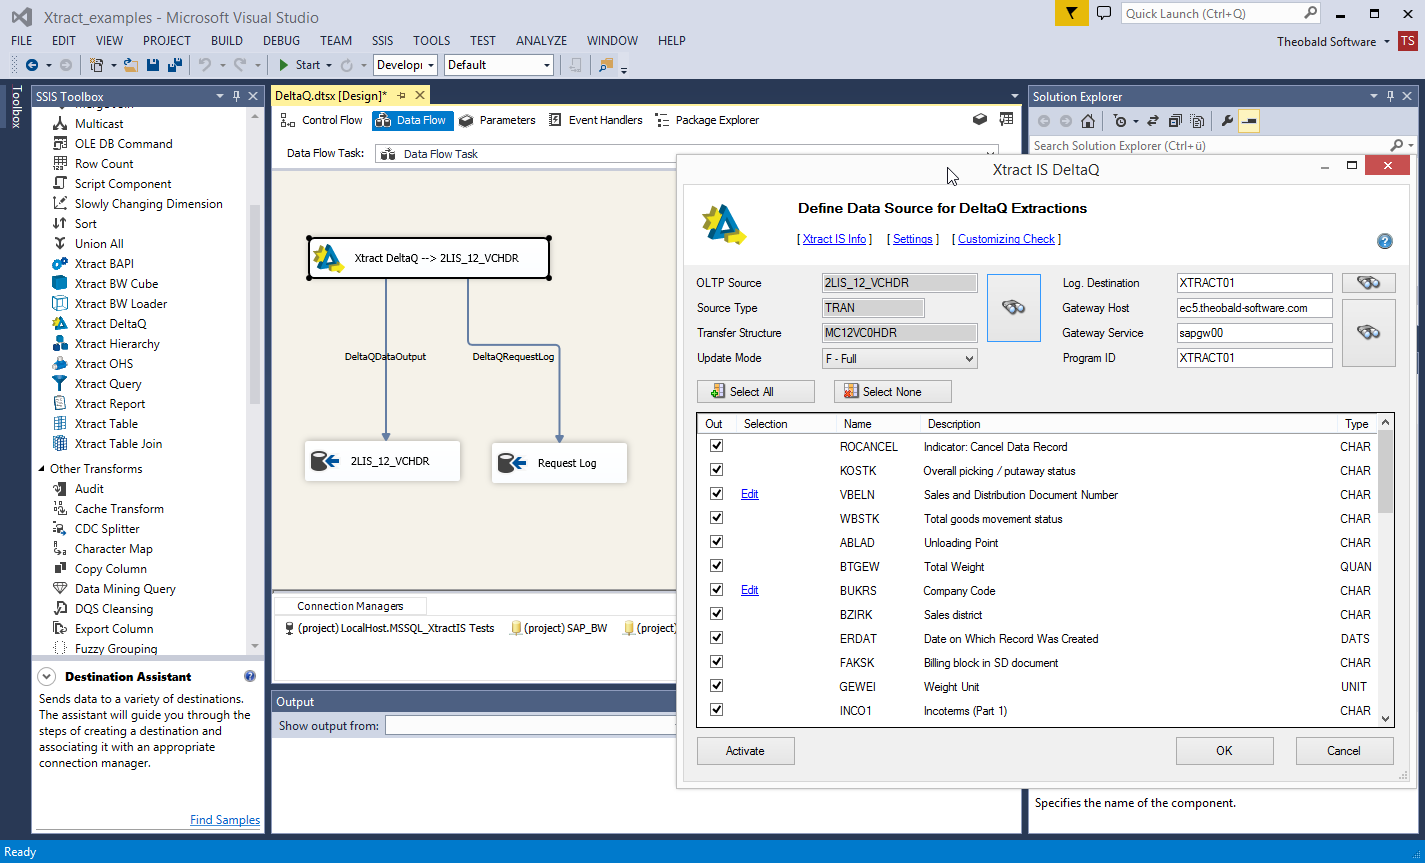 Xtract IS: Integration between SAP and SQL Server Integration Serives